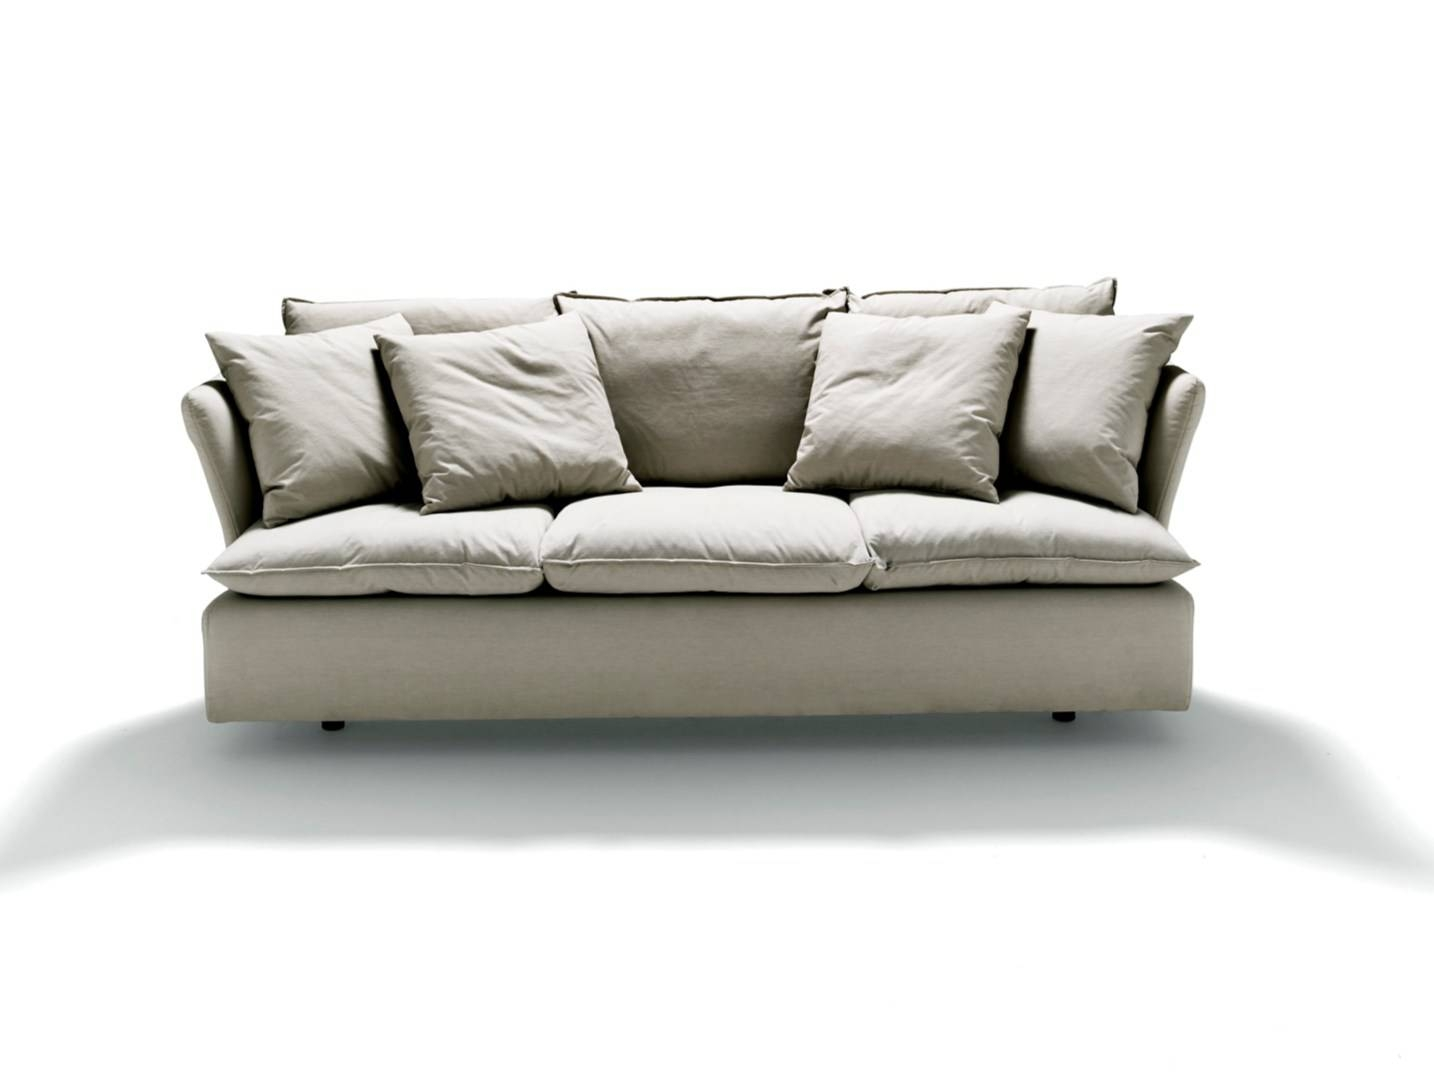 Sofas With Removable Cover | Archiproducts in Sofa With Removable Cover (Image 25 of 30)